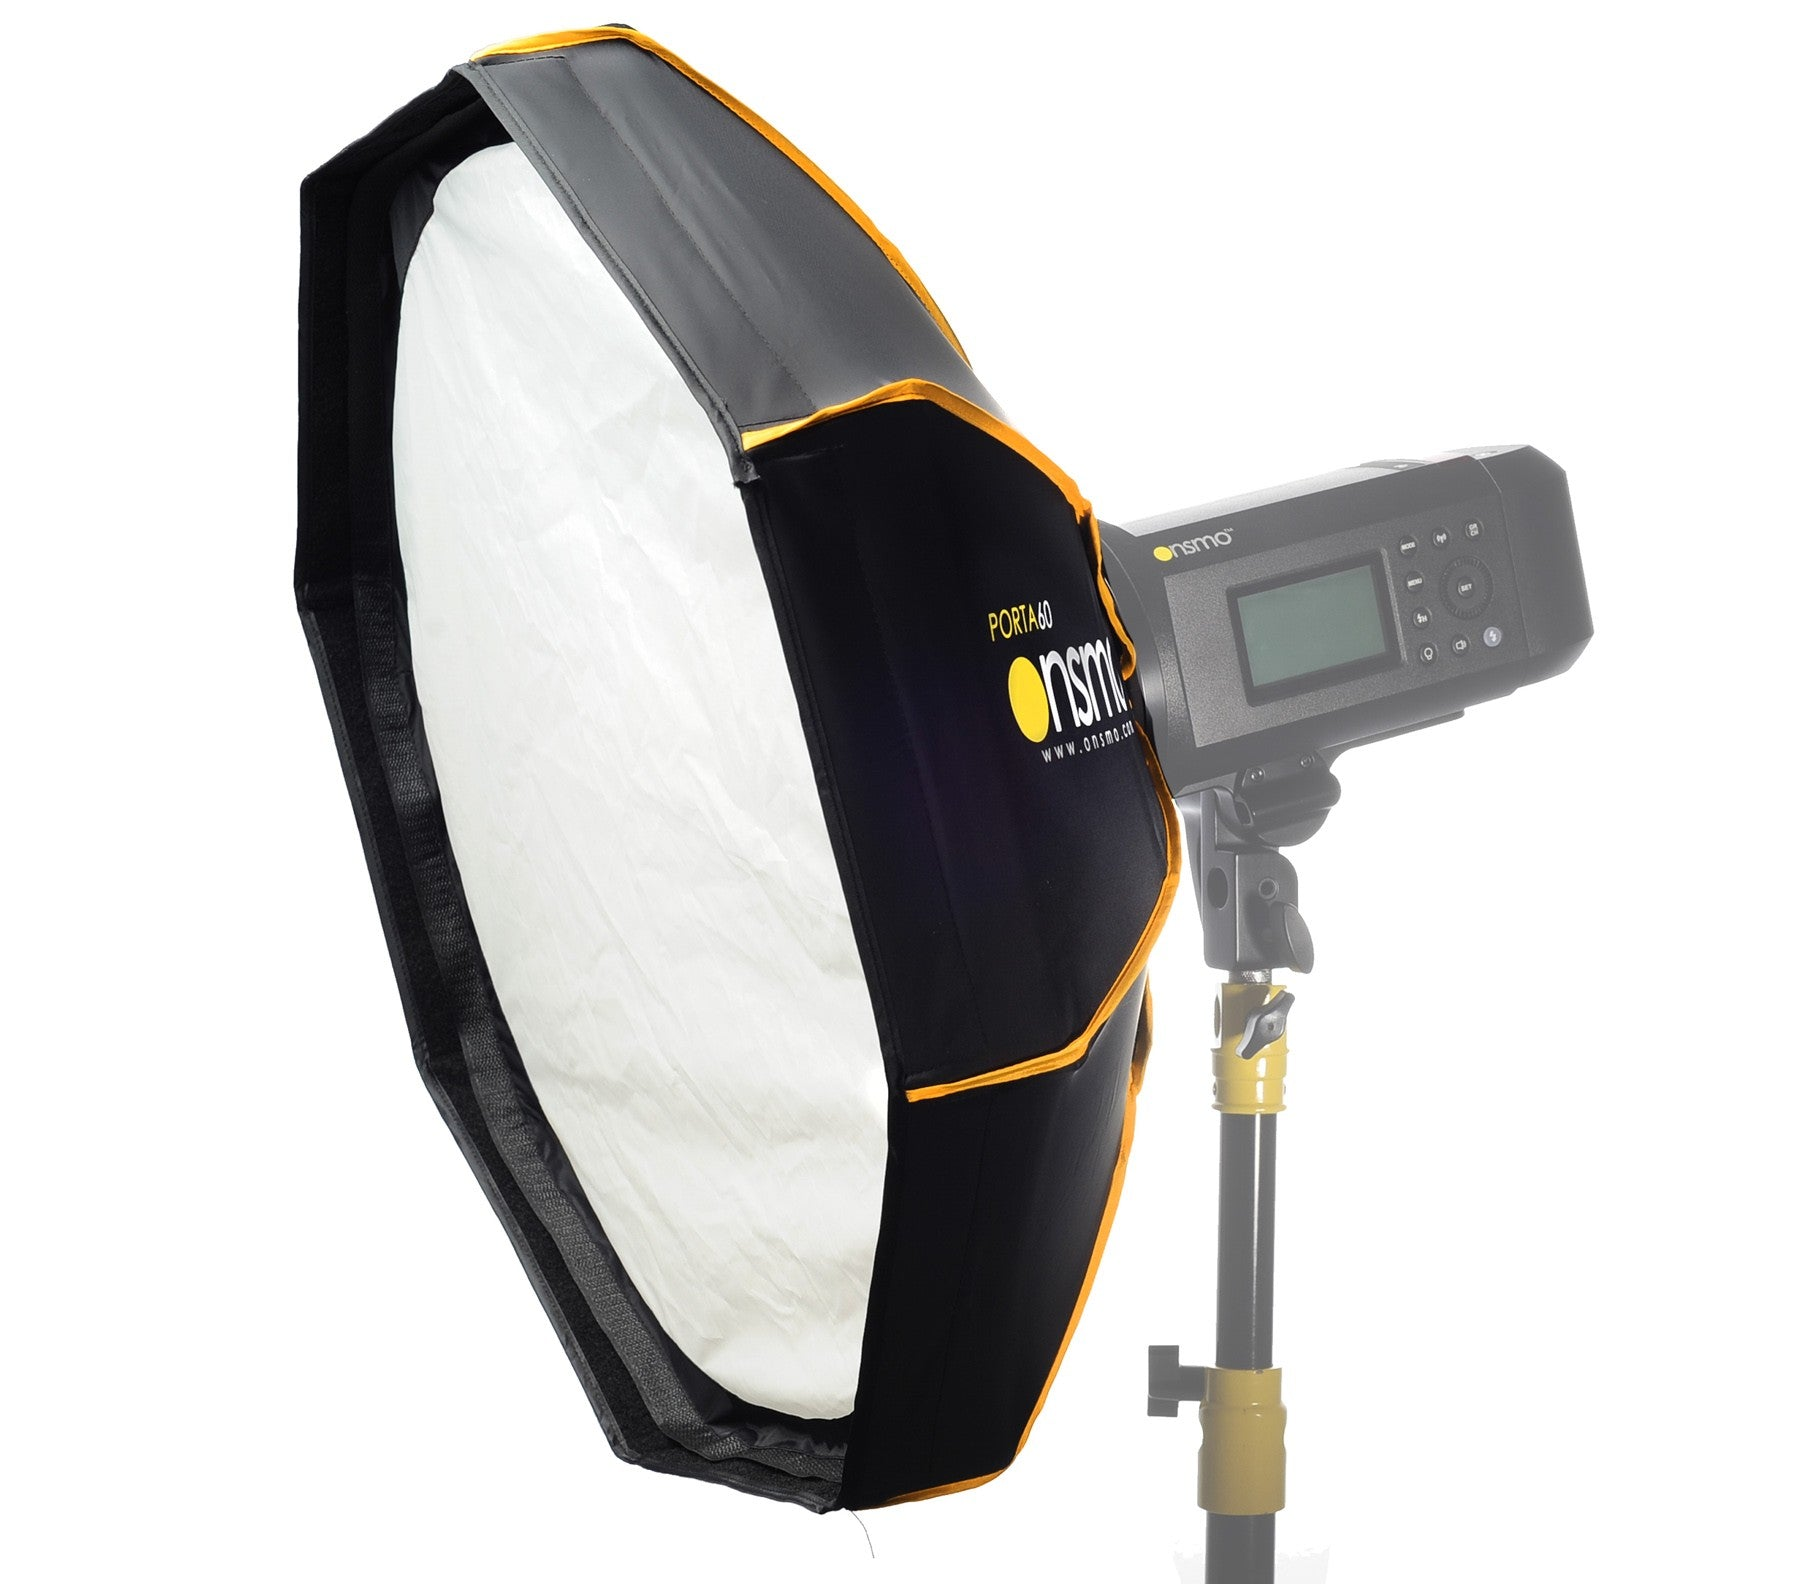 Onsmo Porta 60 (Octagonal Beauty Dish Softbox with Grid and Dish)